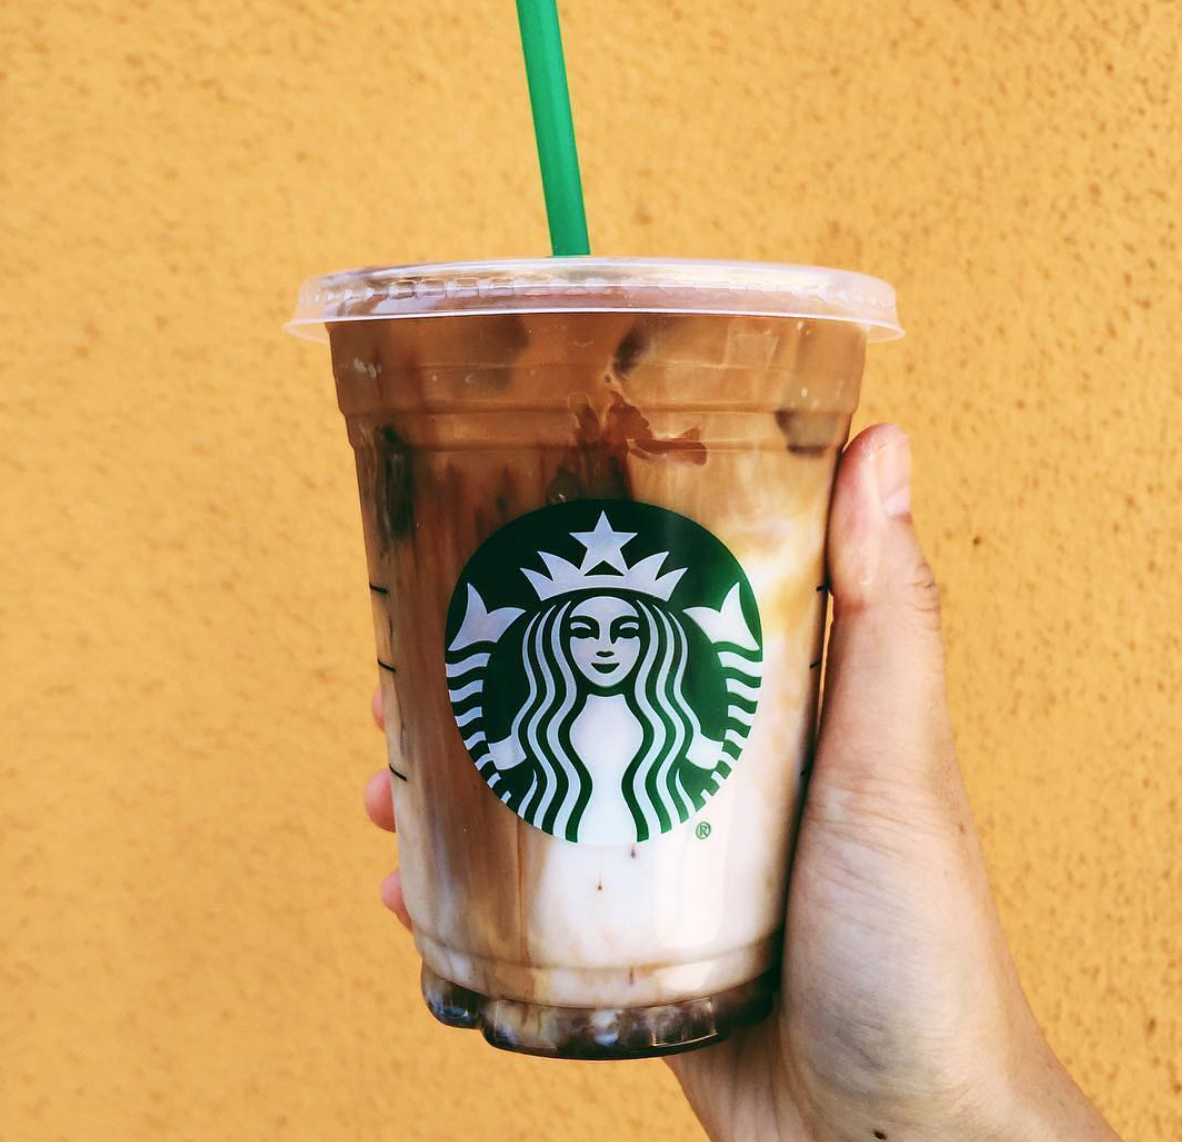 Here's how you can get a free Starbucks drink this week